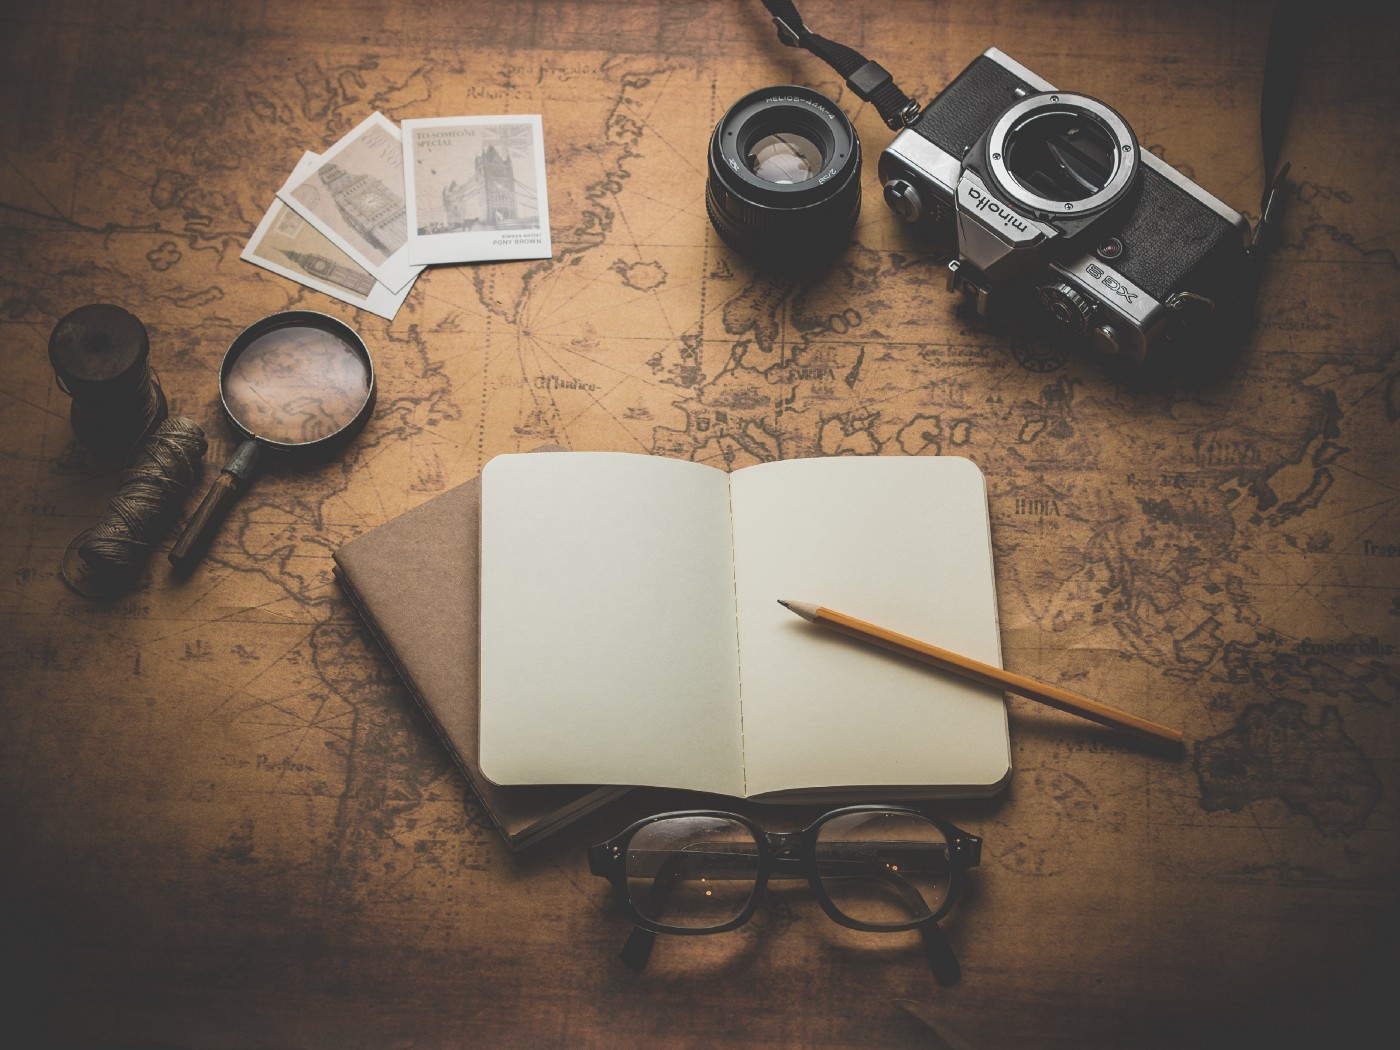 A notebook, a camera, some cards, a loop, and a pen on a table